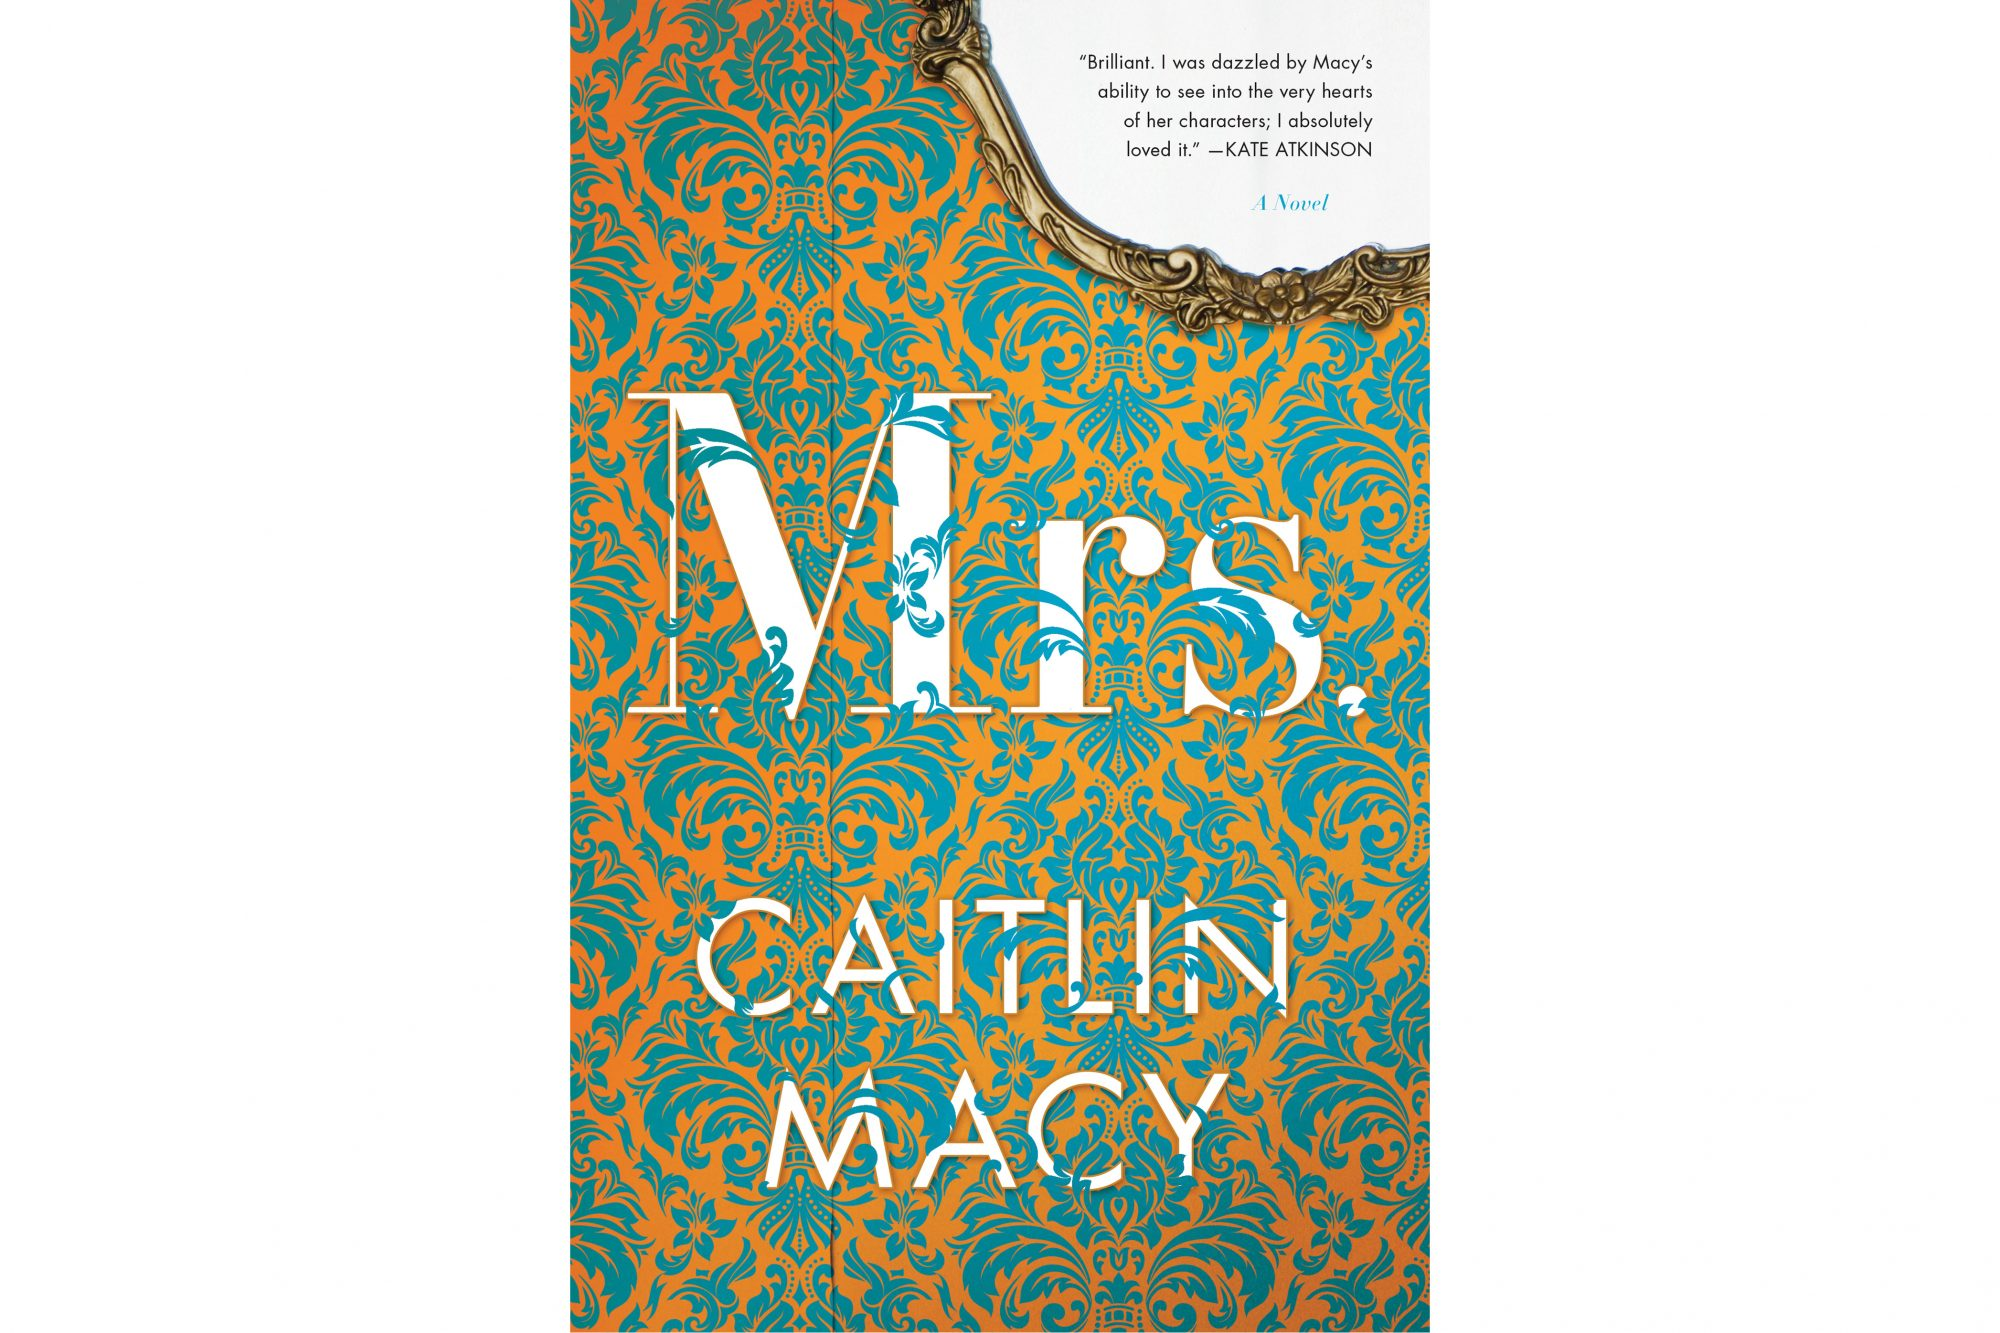 Mrs., by Caitlin Macy